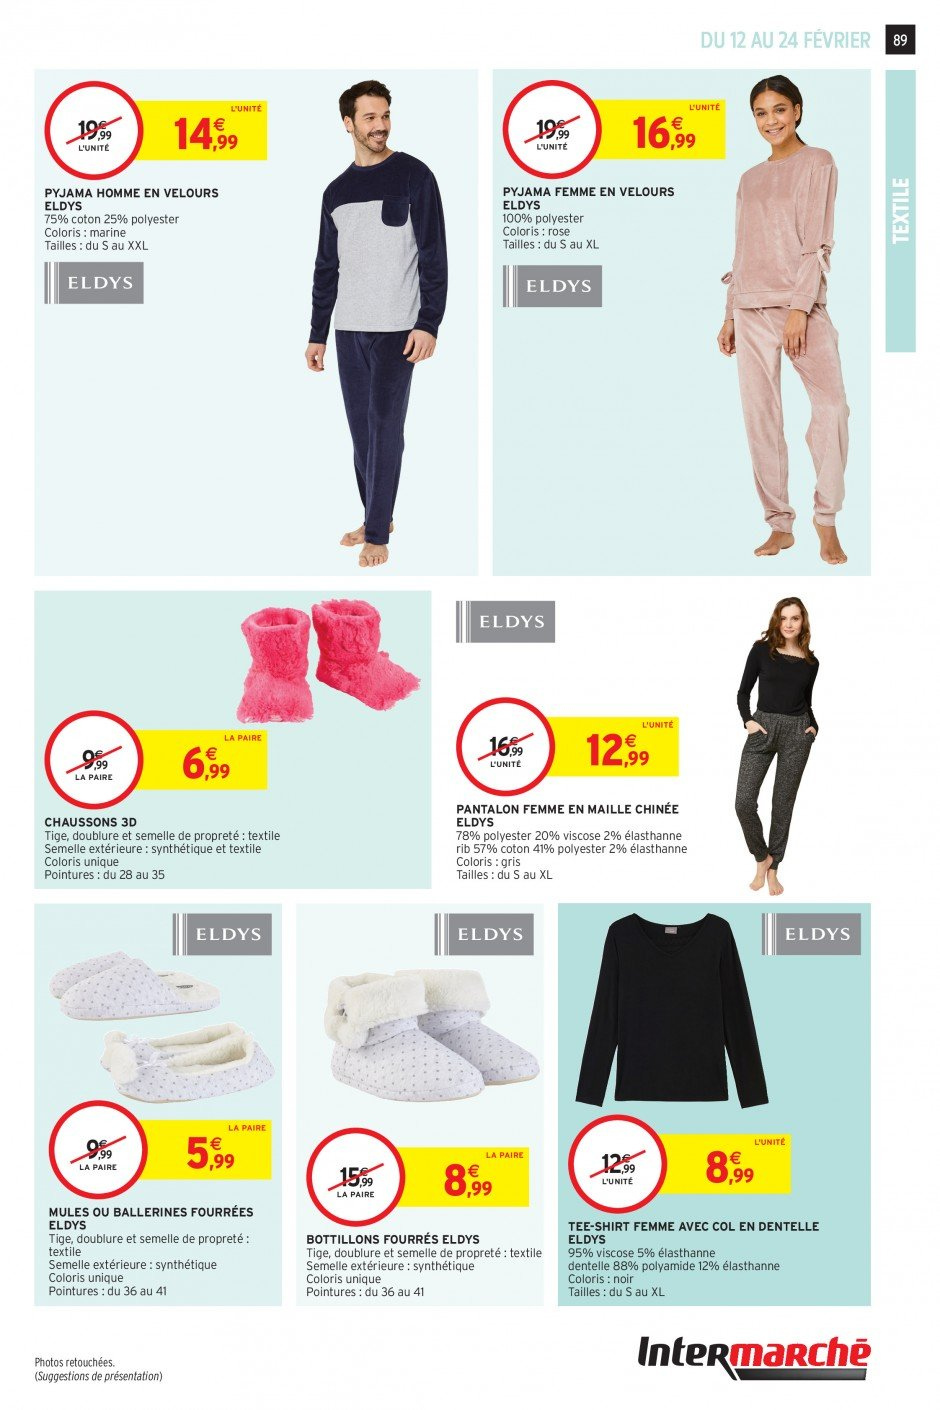 Catalogue Intermarché - 12.02.2019 - 24.02.2019. Page 87.